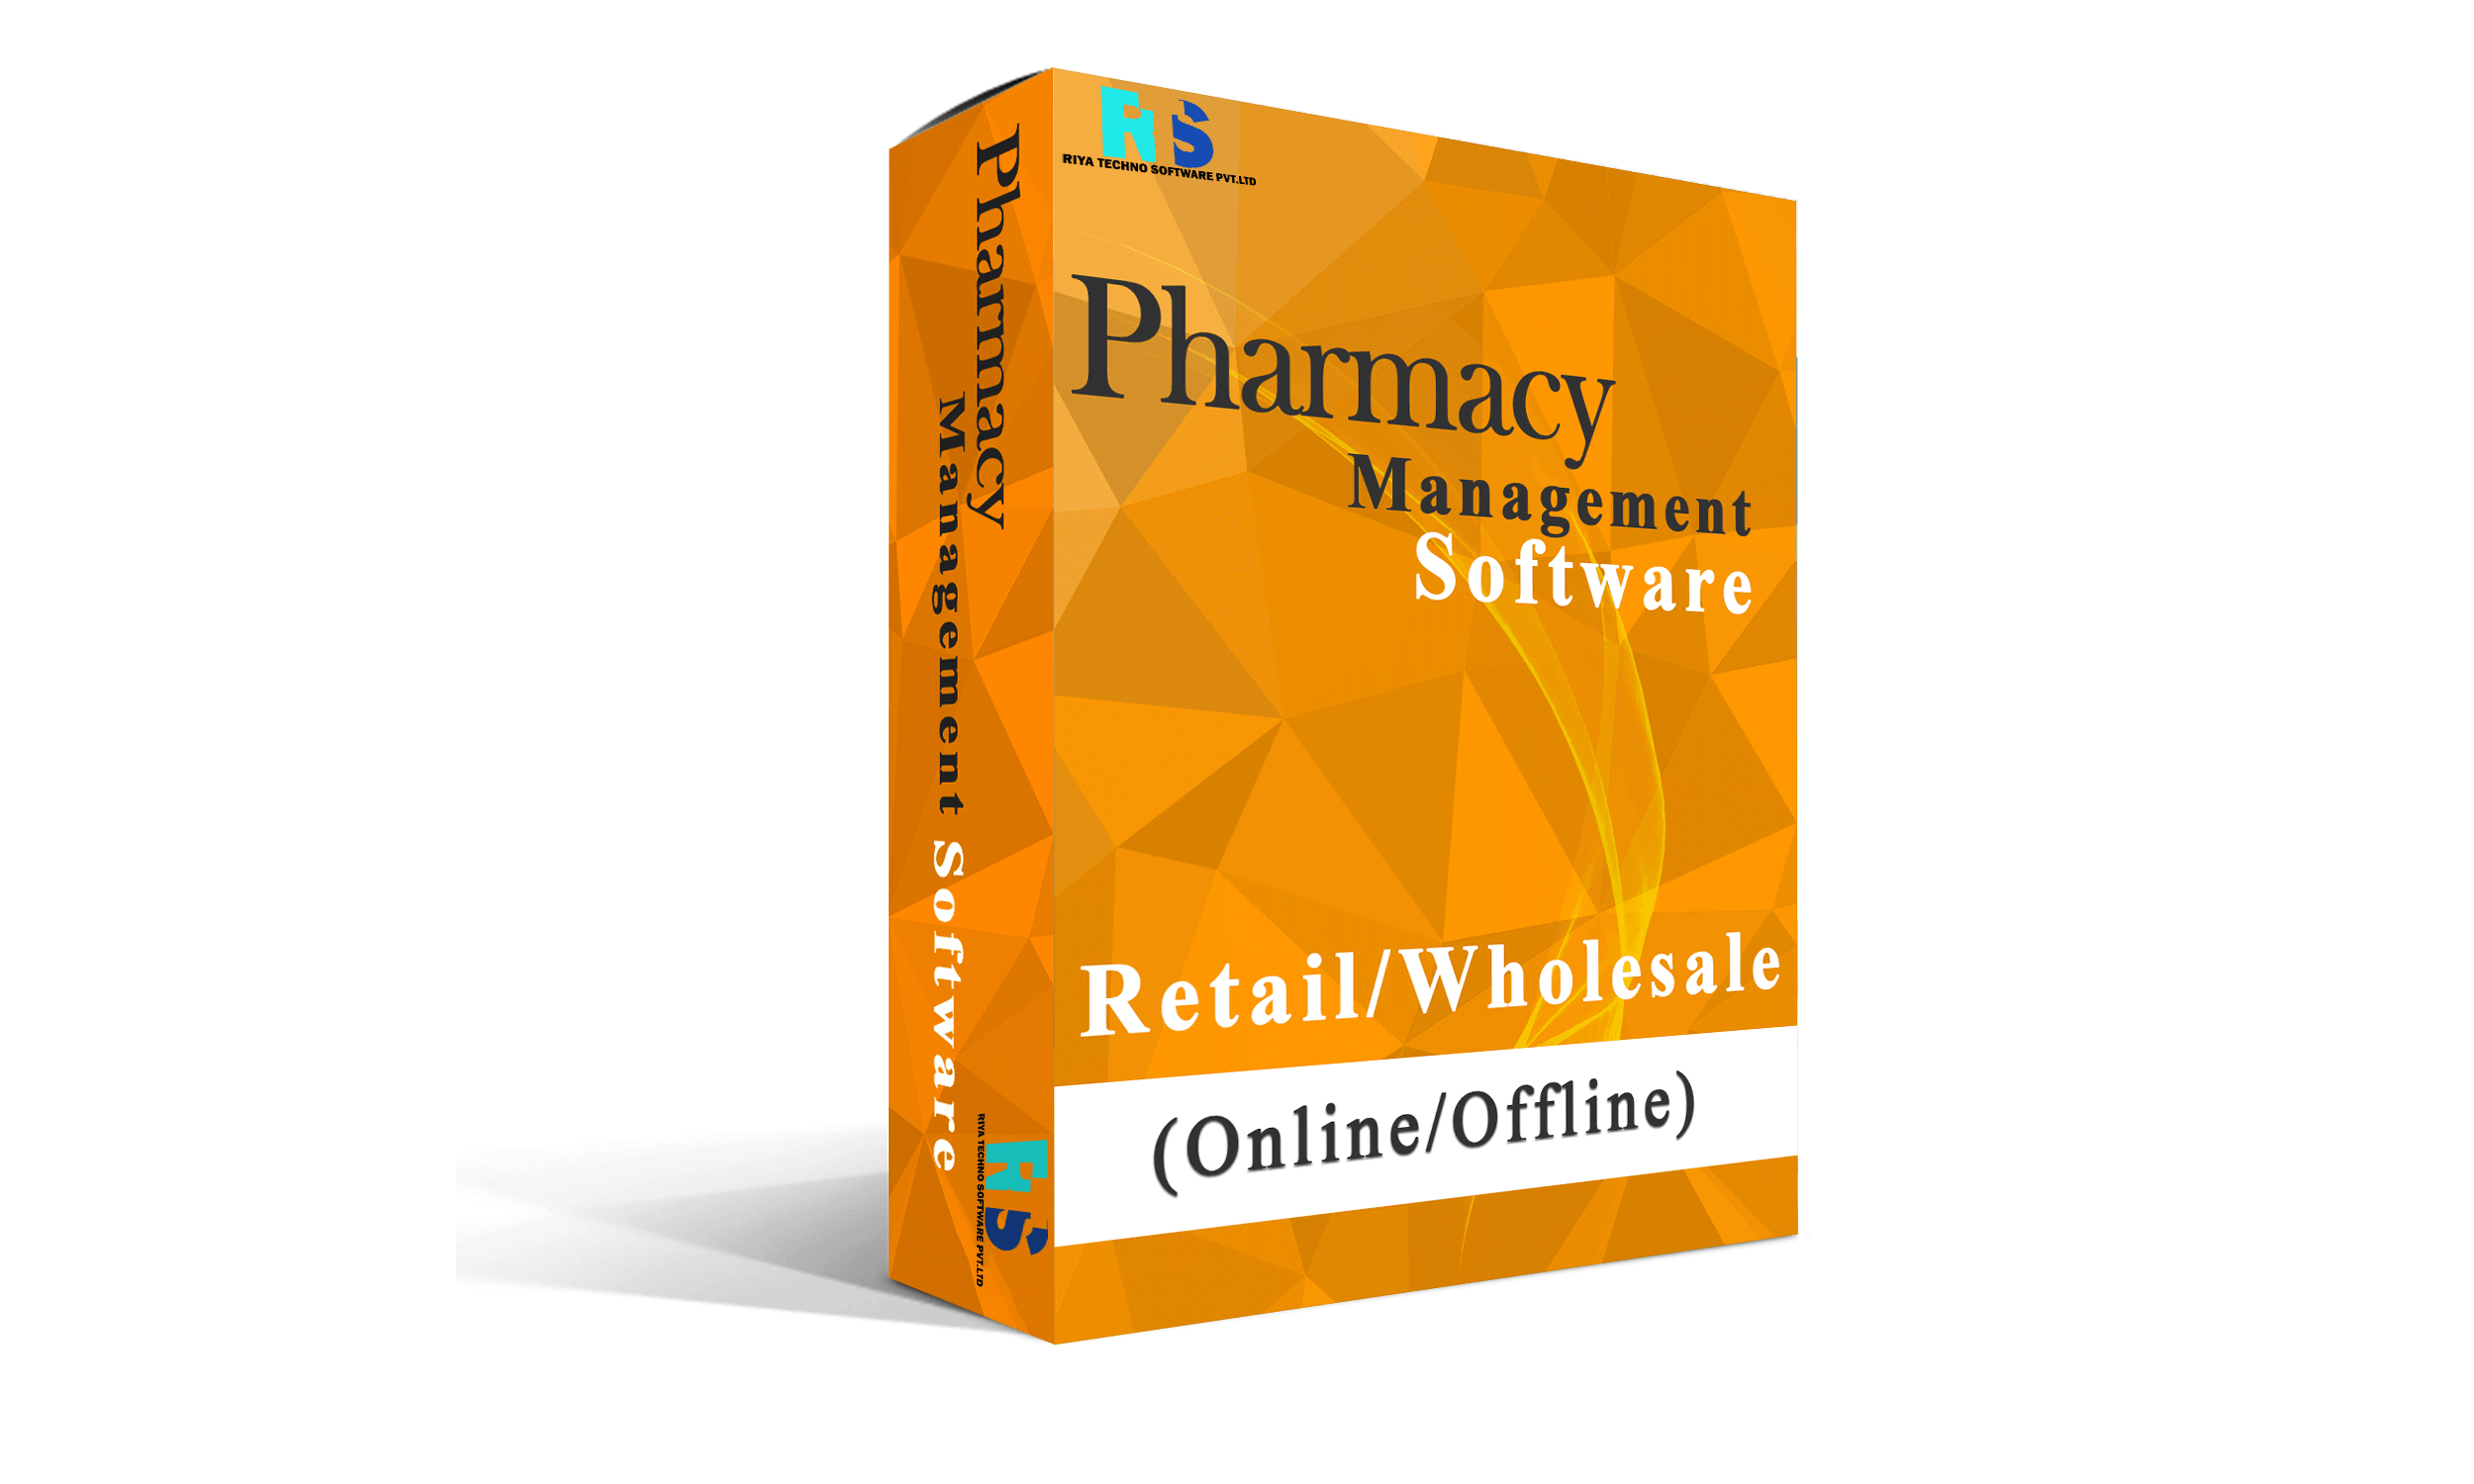 pharma management software